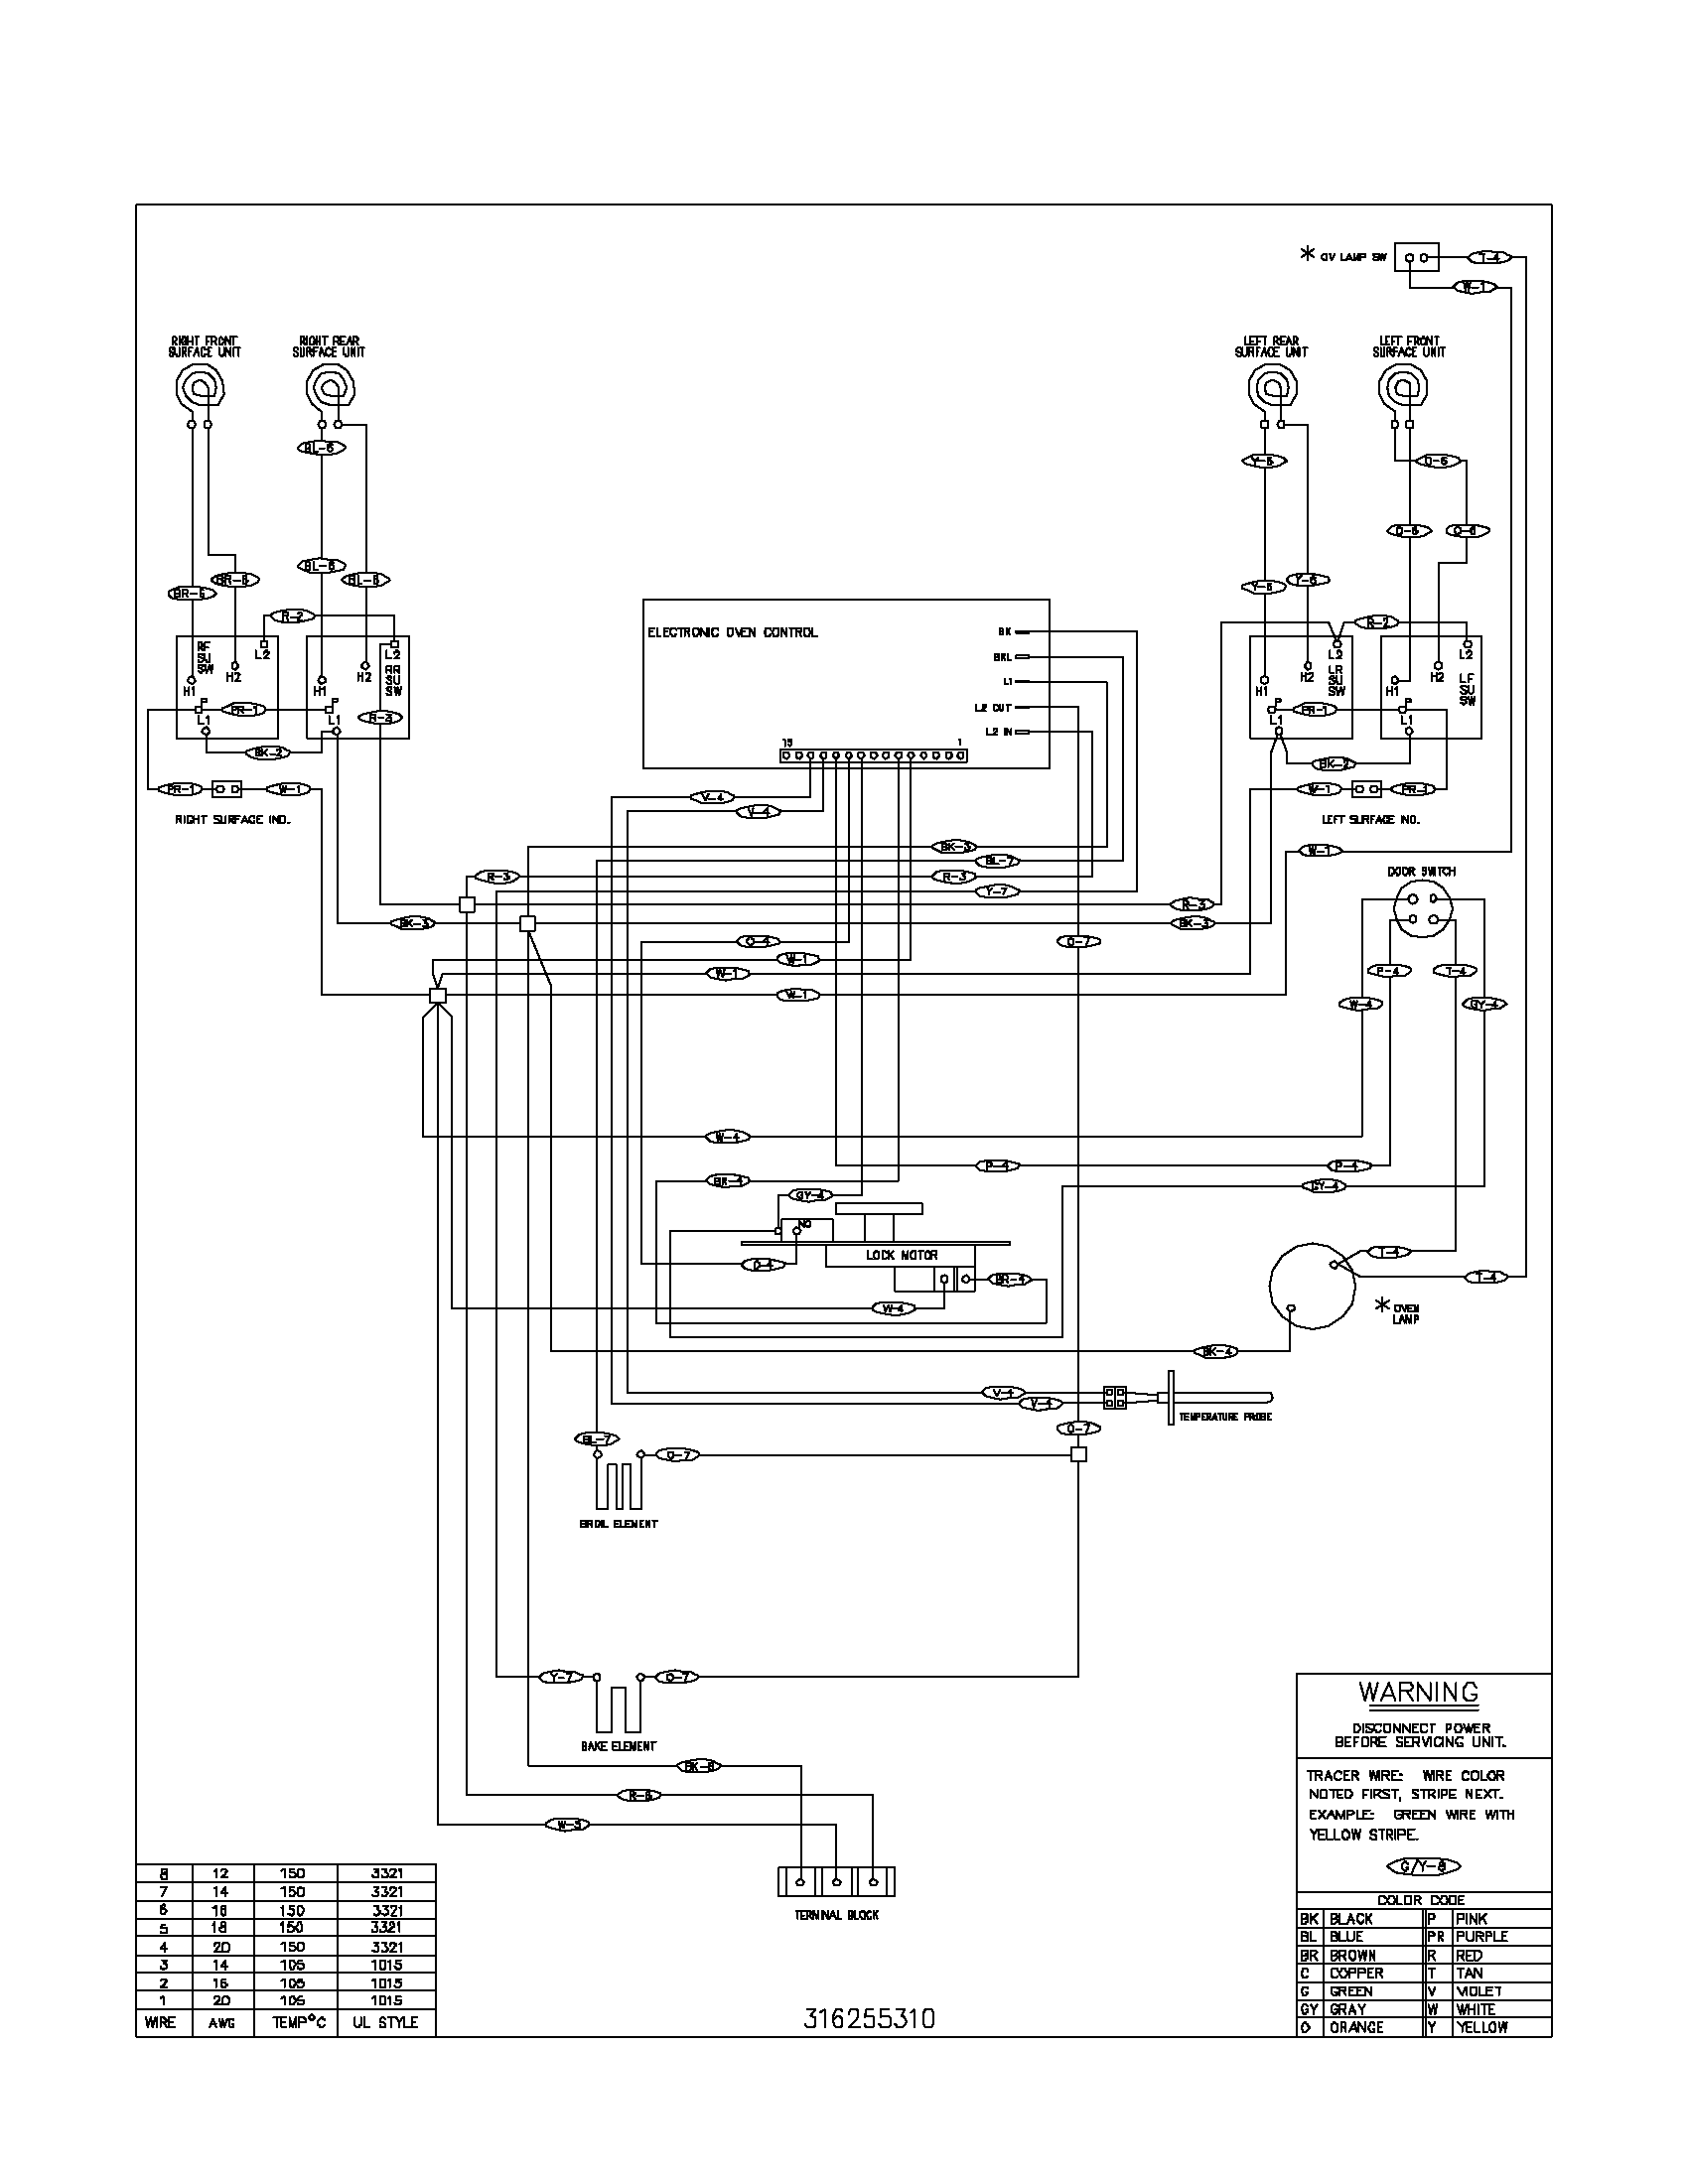 hotpoint wiring diagram 28 images hotpoint refrigerator rh sauhosting us Old Hotpoint Washer Diagrams Hotpoint Dryer Belt Replacement Diagram